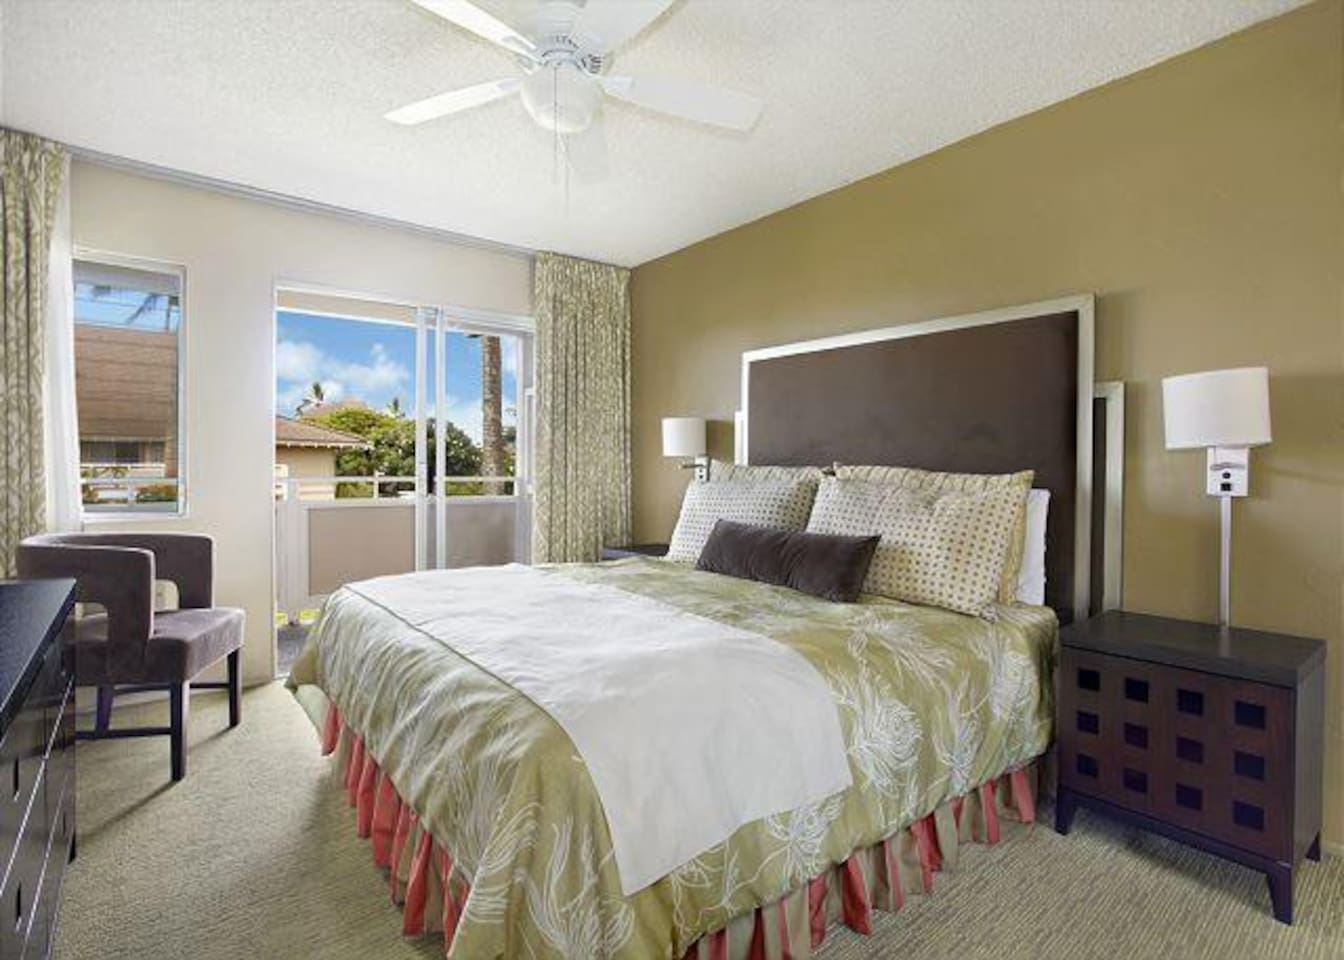 Heavenly king size bed in bright, spacious bdrm with patio doors to lanai